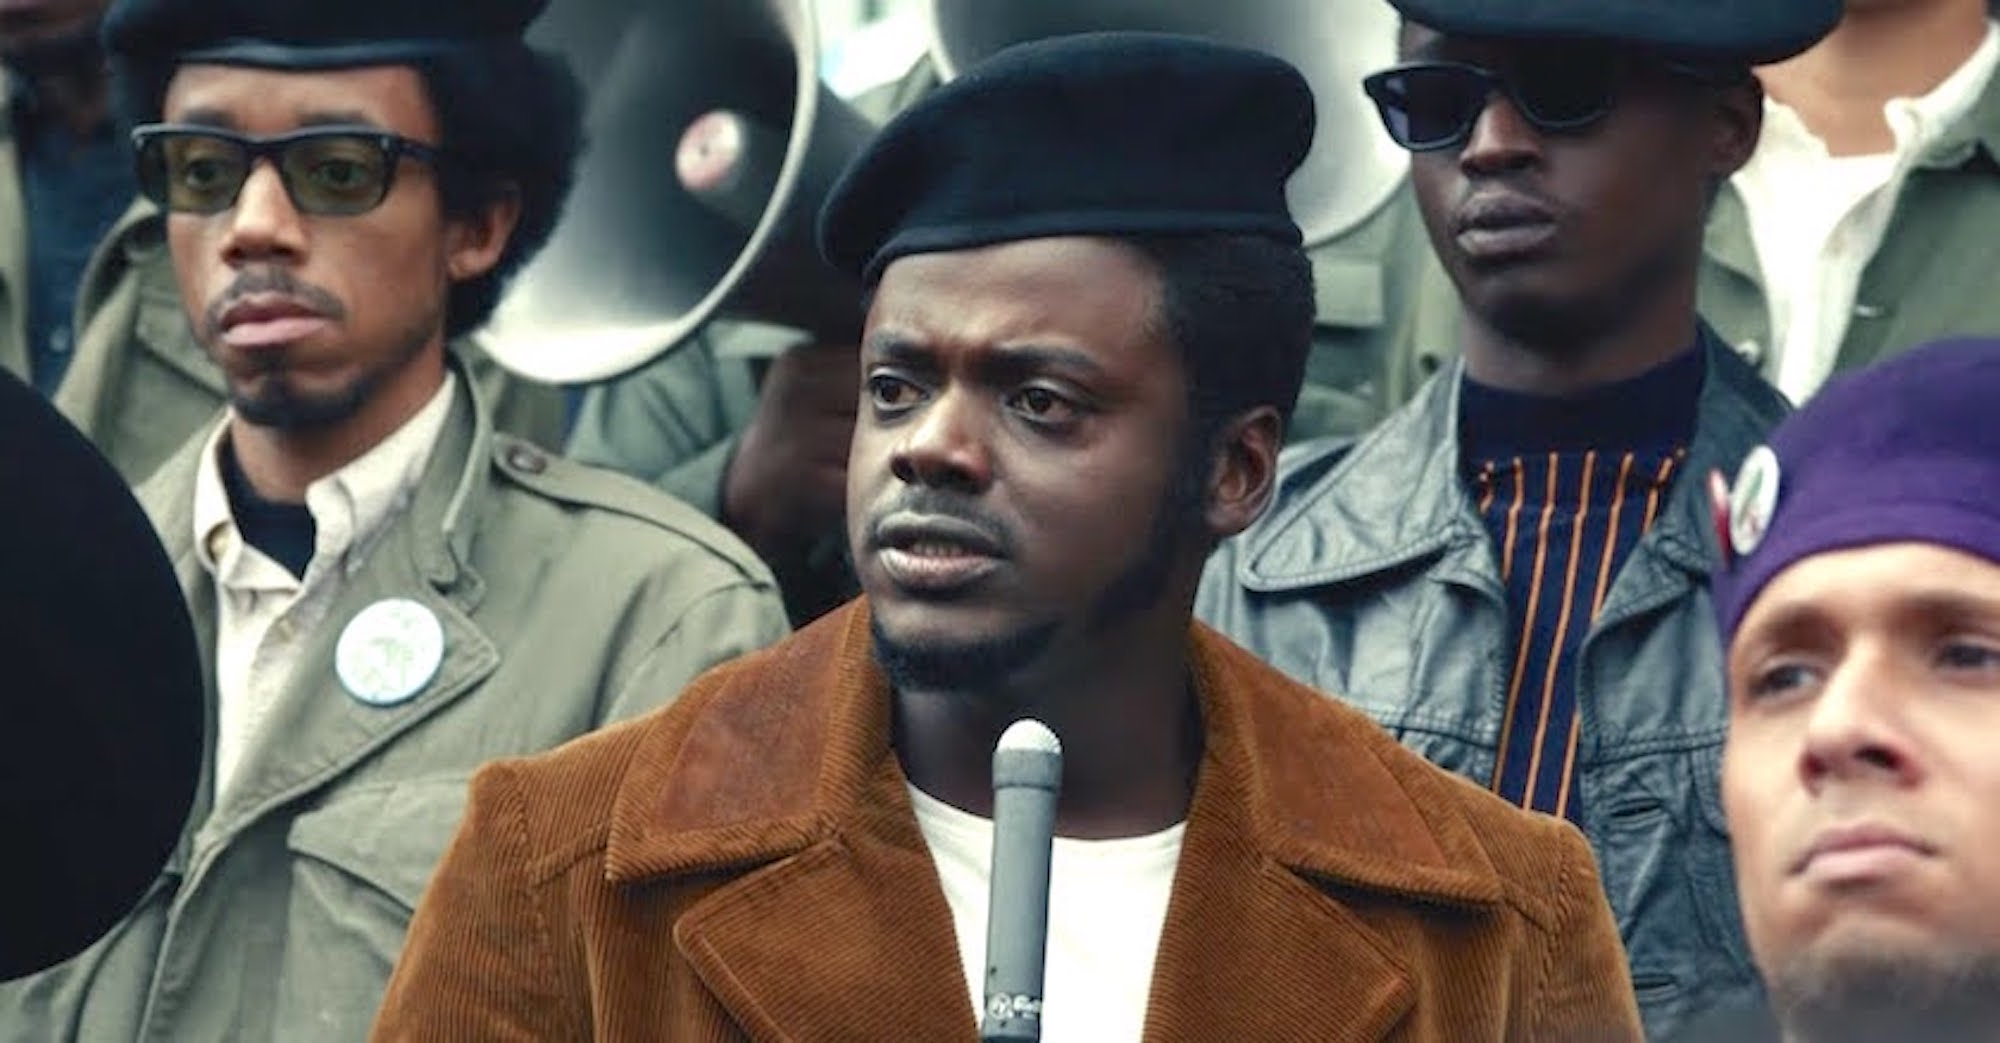 The actor Daniel Kaluuya in character as Fred Hampton. He is standing in front of a microphone looking serious and concerned, with other Black activists standing behind him.